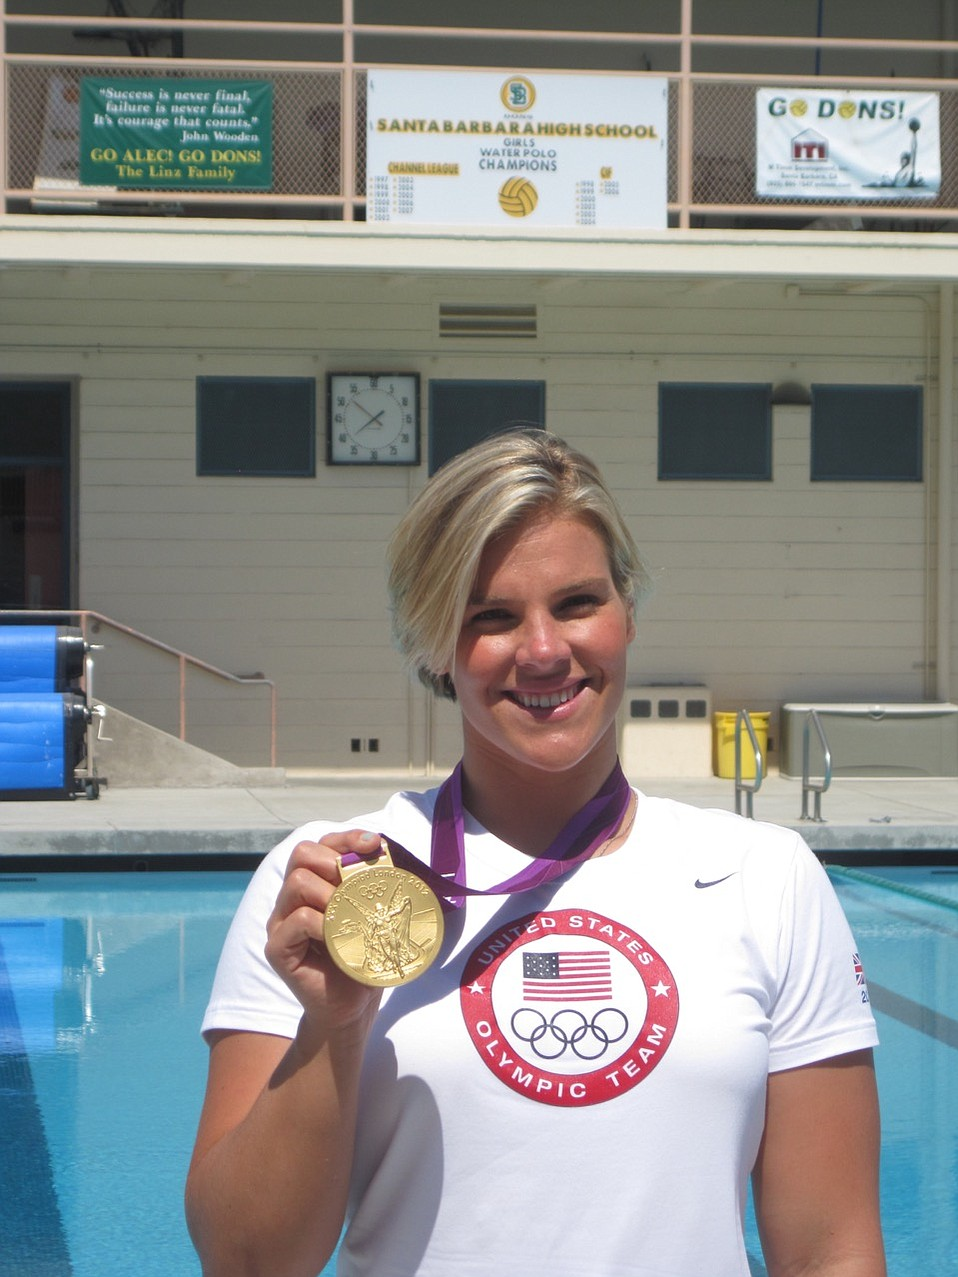 Kami Craig displays the gold medal she won with the U.S. water polo team at the 2012 Olympic Games in London.